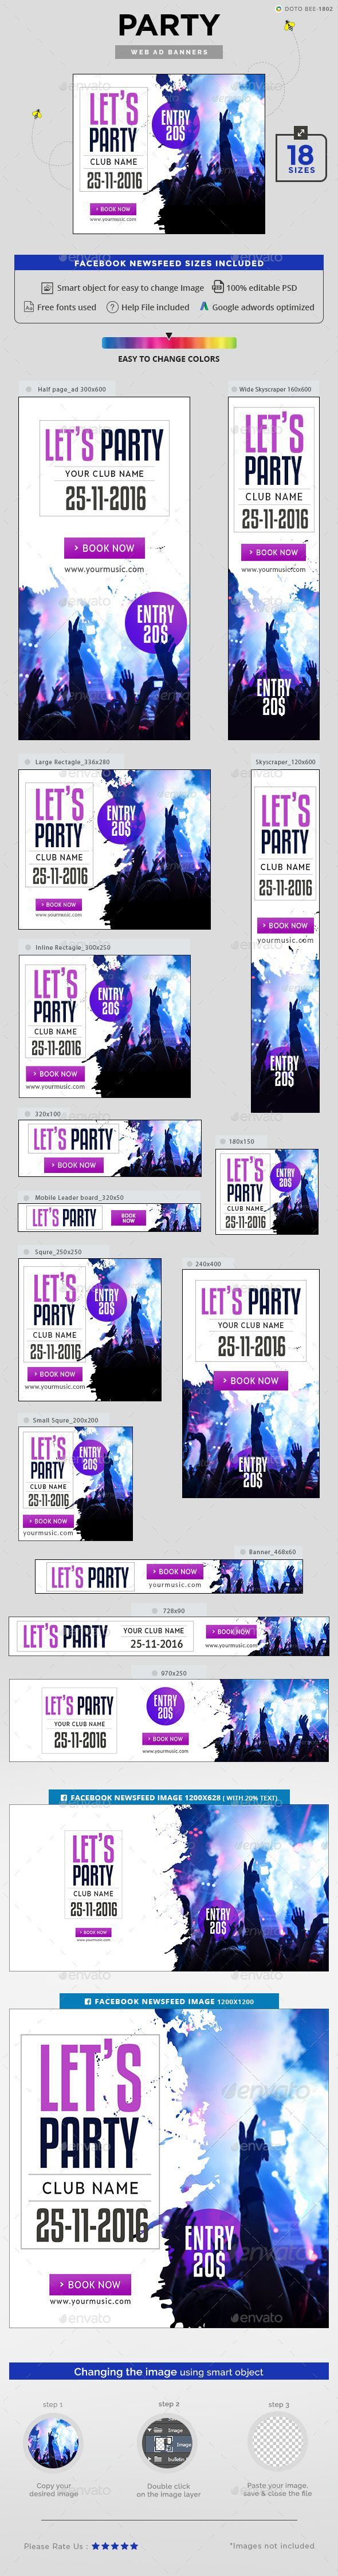 Party Banners Design template - Banners & Ads Web Elements Design Template PSD. Download here: https://graphicriver.net/item/party-banners/18957049?ref=yinkira